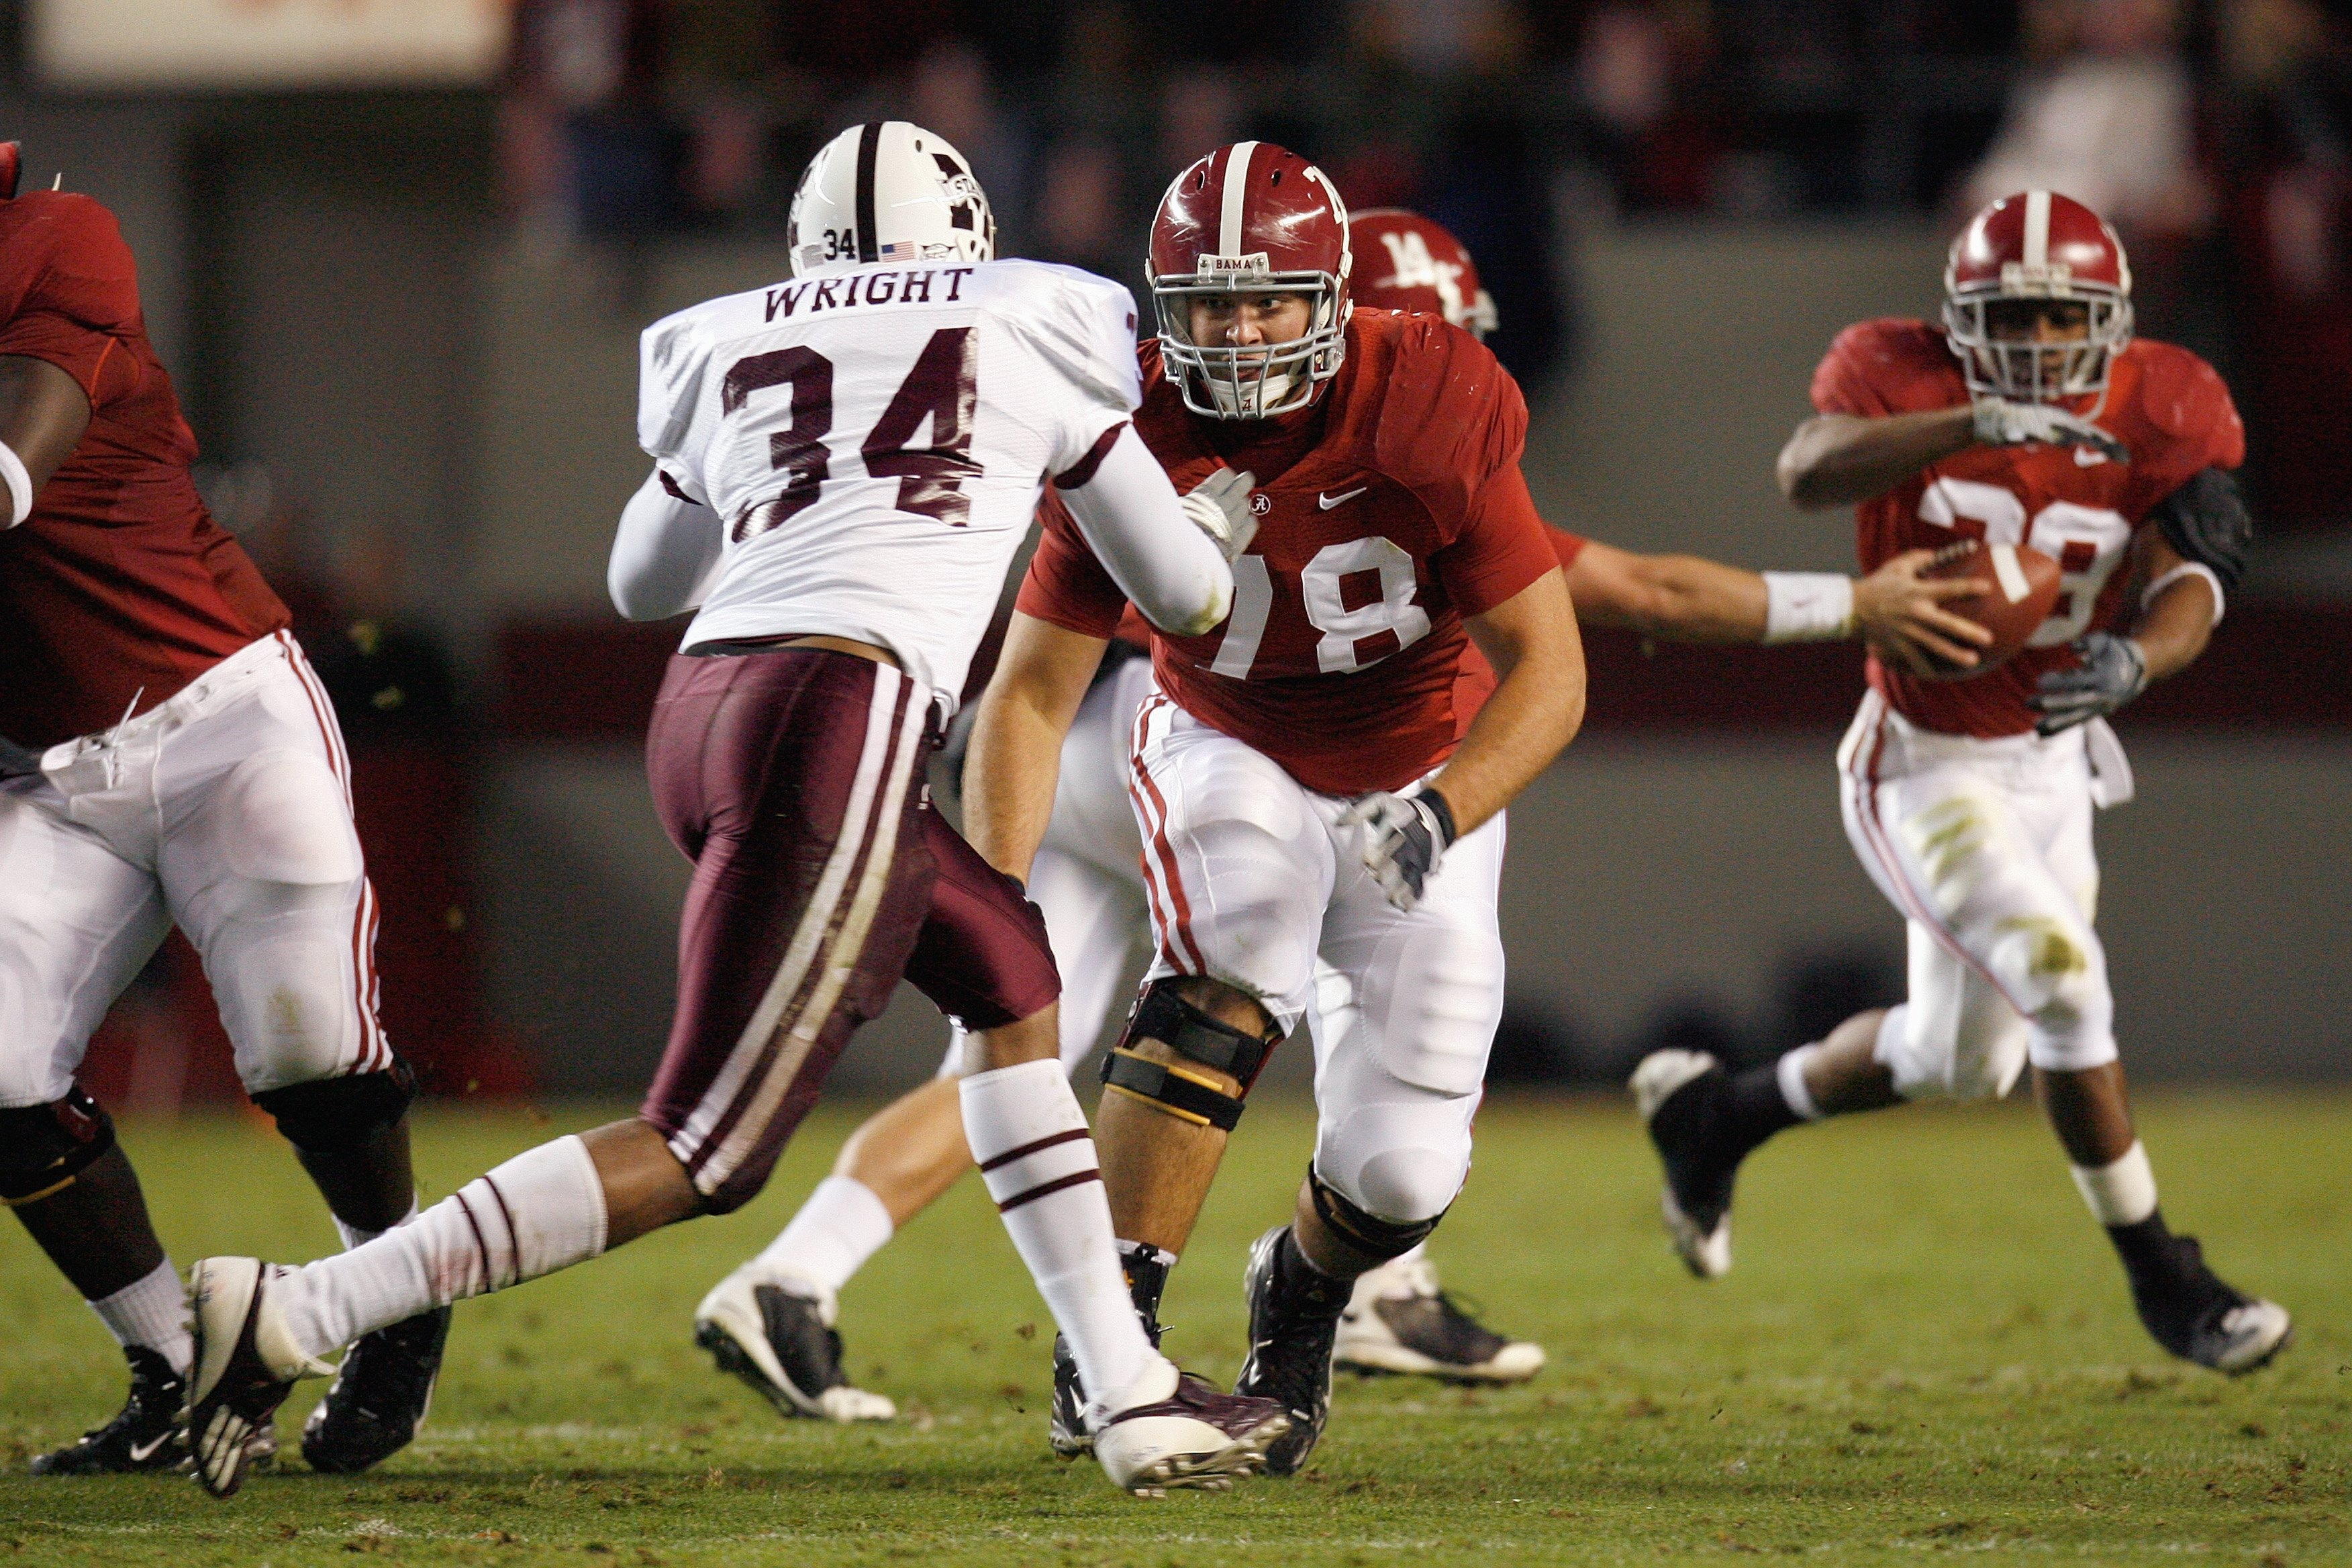 TUSCALOOSA, AL - NOVEMBER 15:  # of the Alabama Crimson Tide # of the Mississippi State Bulldogs during the game at Bryant-Denny Stadium on November 15, 2008 in Tuscaloosa, Alabama.  (Photo by Kevin C. Cox/Getty Images)